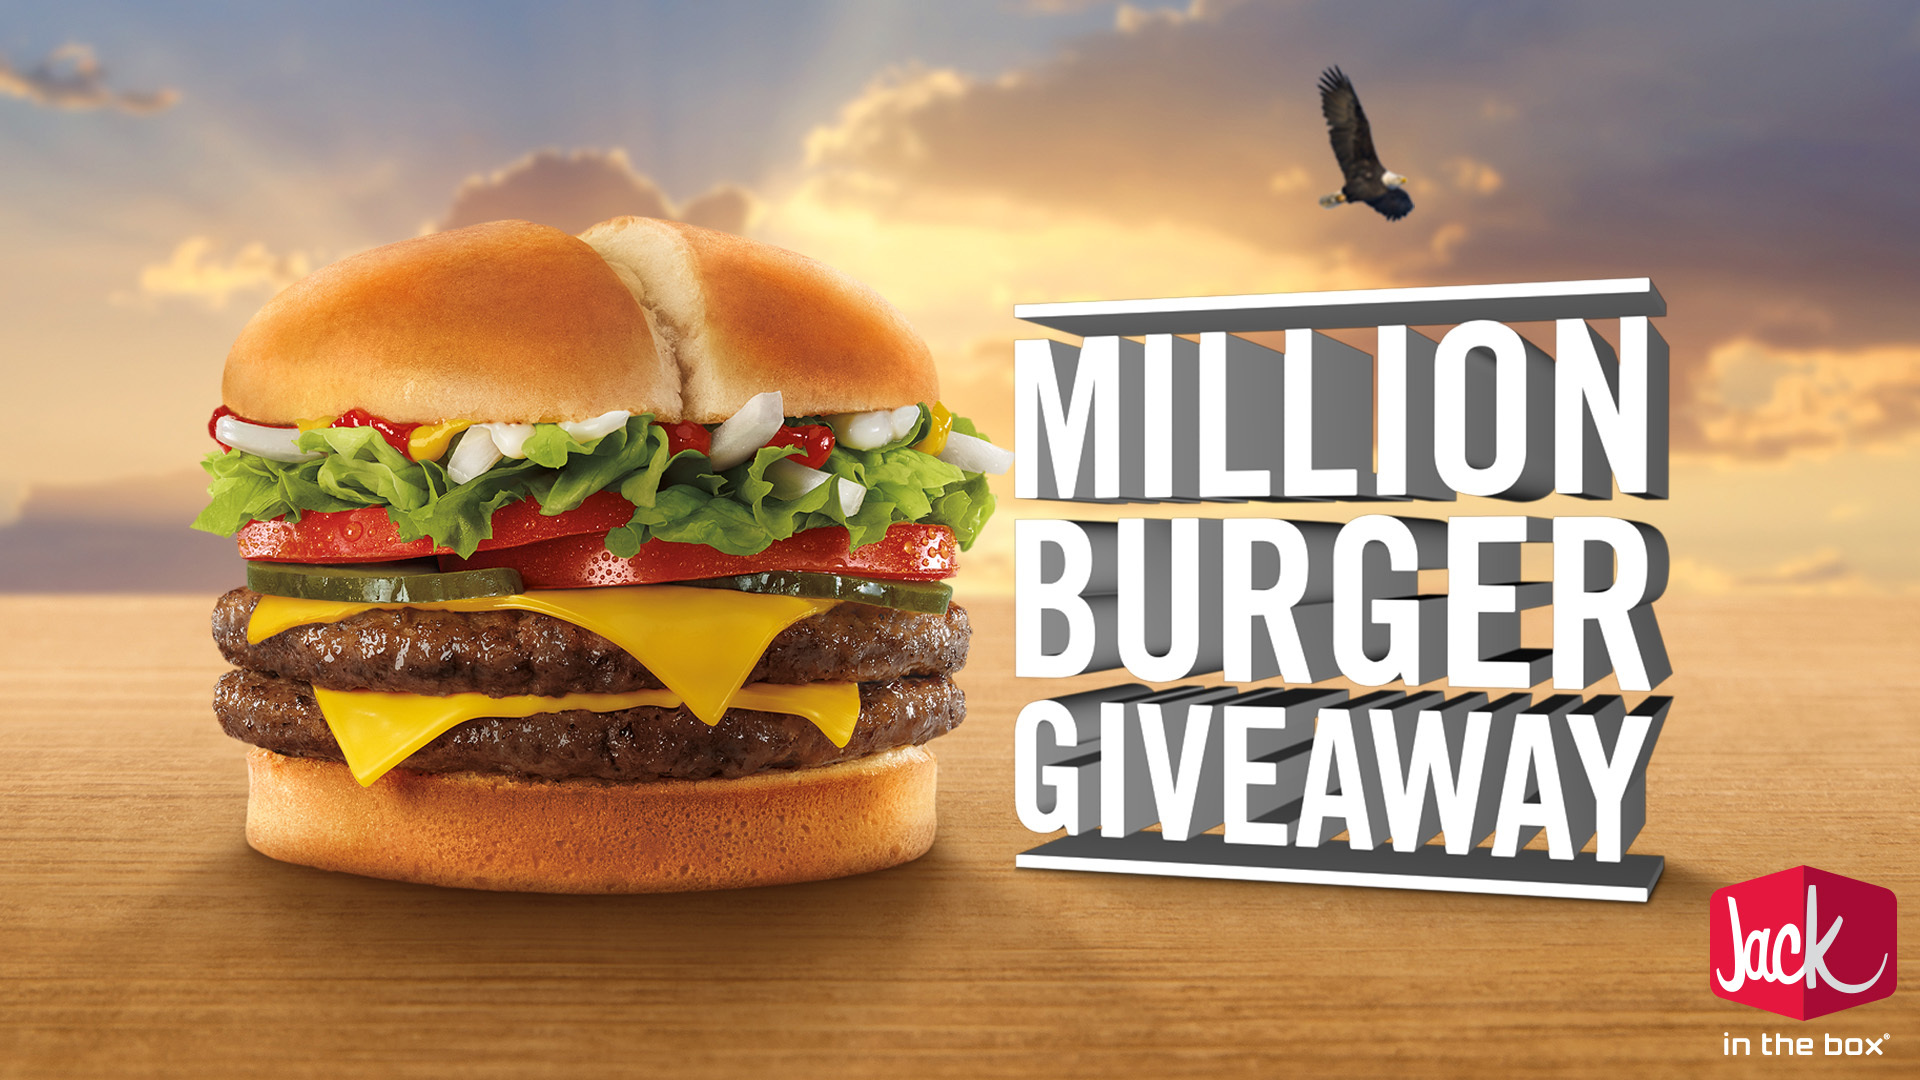 Jack In The Box Promotes New Burger By Giving Away A Million Of Them